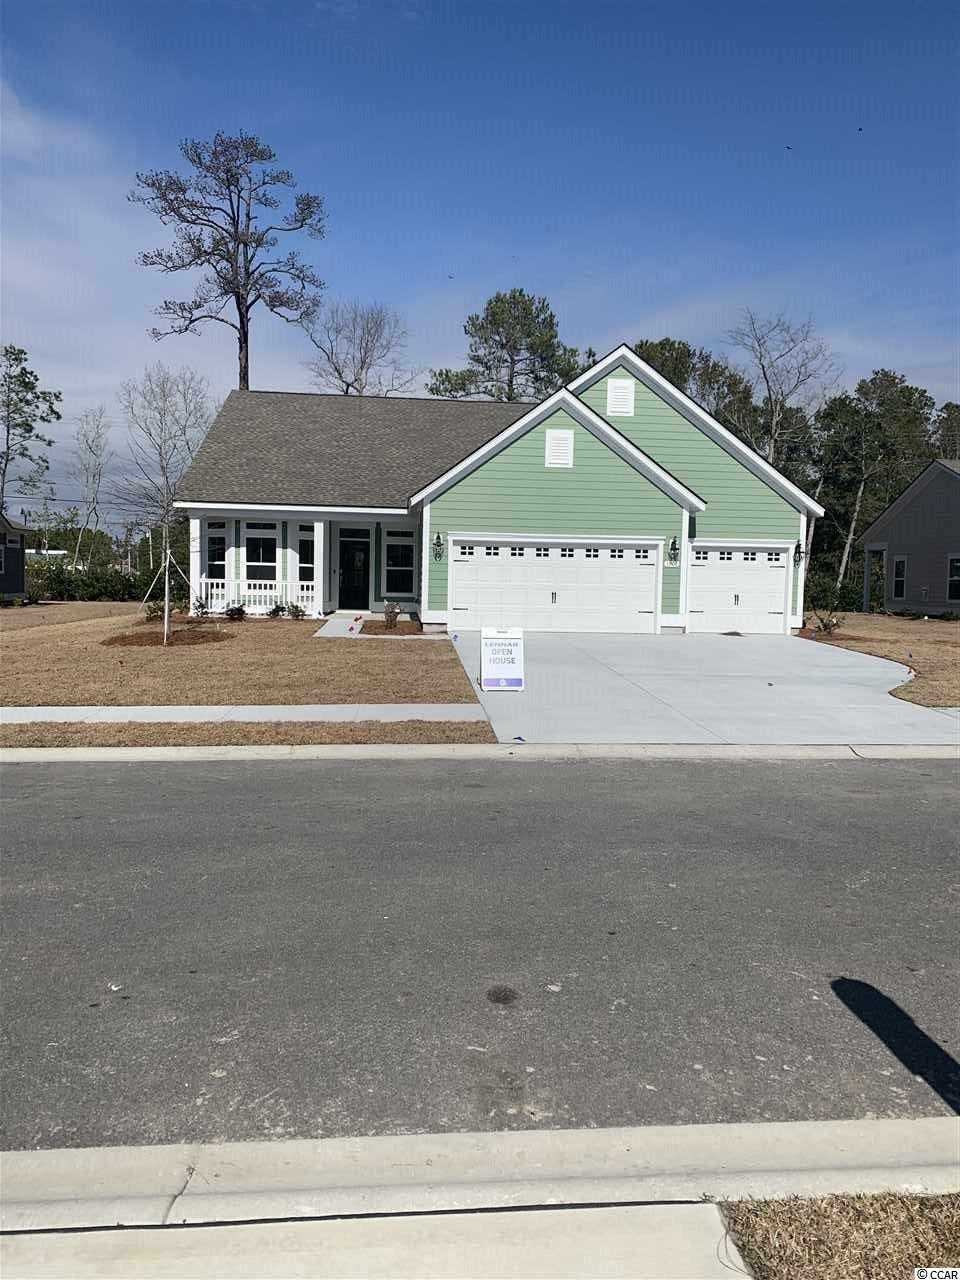 In partnership with Amazon, We are the first and only WiFi Certified Home Builder. Our Lexington plan offers a 3 car garage, single story open floor plan.  This home features, Hardiplank siding, granite counter tops, staggered kitchen cabinets, stainless steel appliances, tile backsplash, Shaw Laminate Flooring, rannai tankless water heater. Seabrook Plantation in North Myrtle Beach is a Natural Gas Community.  Seabrook Plantation located a mile from the beach.  Enjoy a golf car ride to the beach, shopping and to Main Street.  **Photos are of similar home in another community. Buyer responsible for verification of all measurements.**